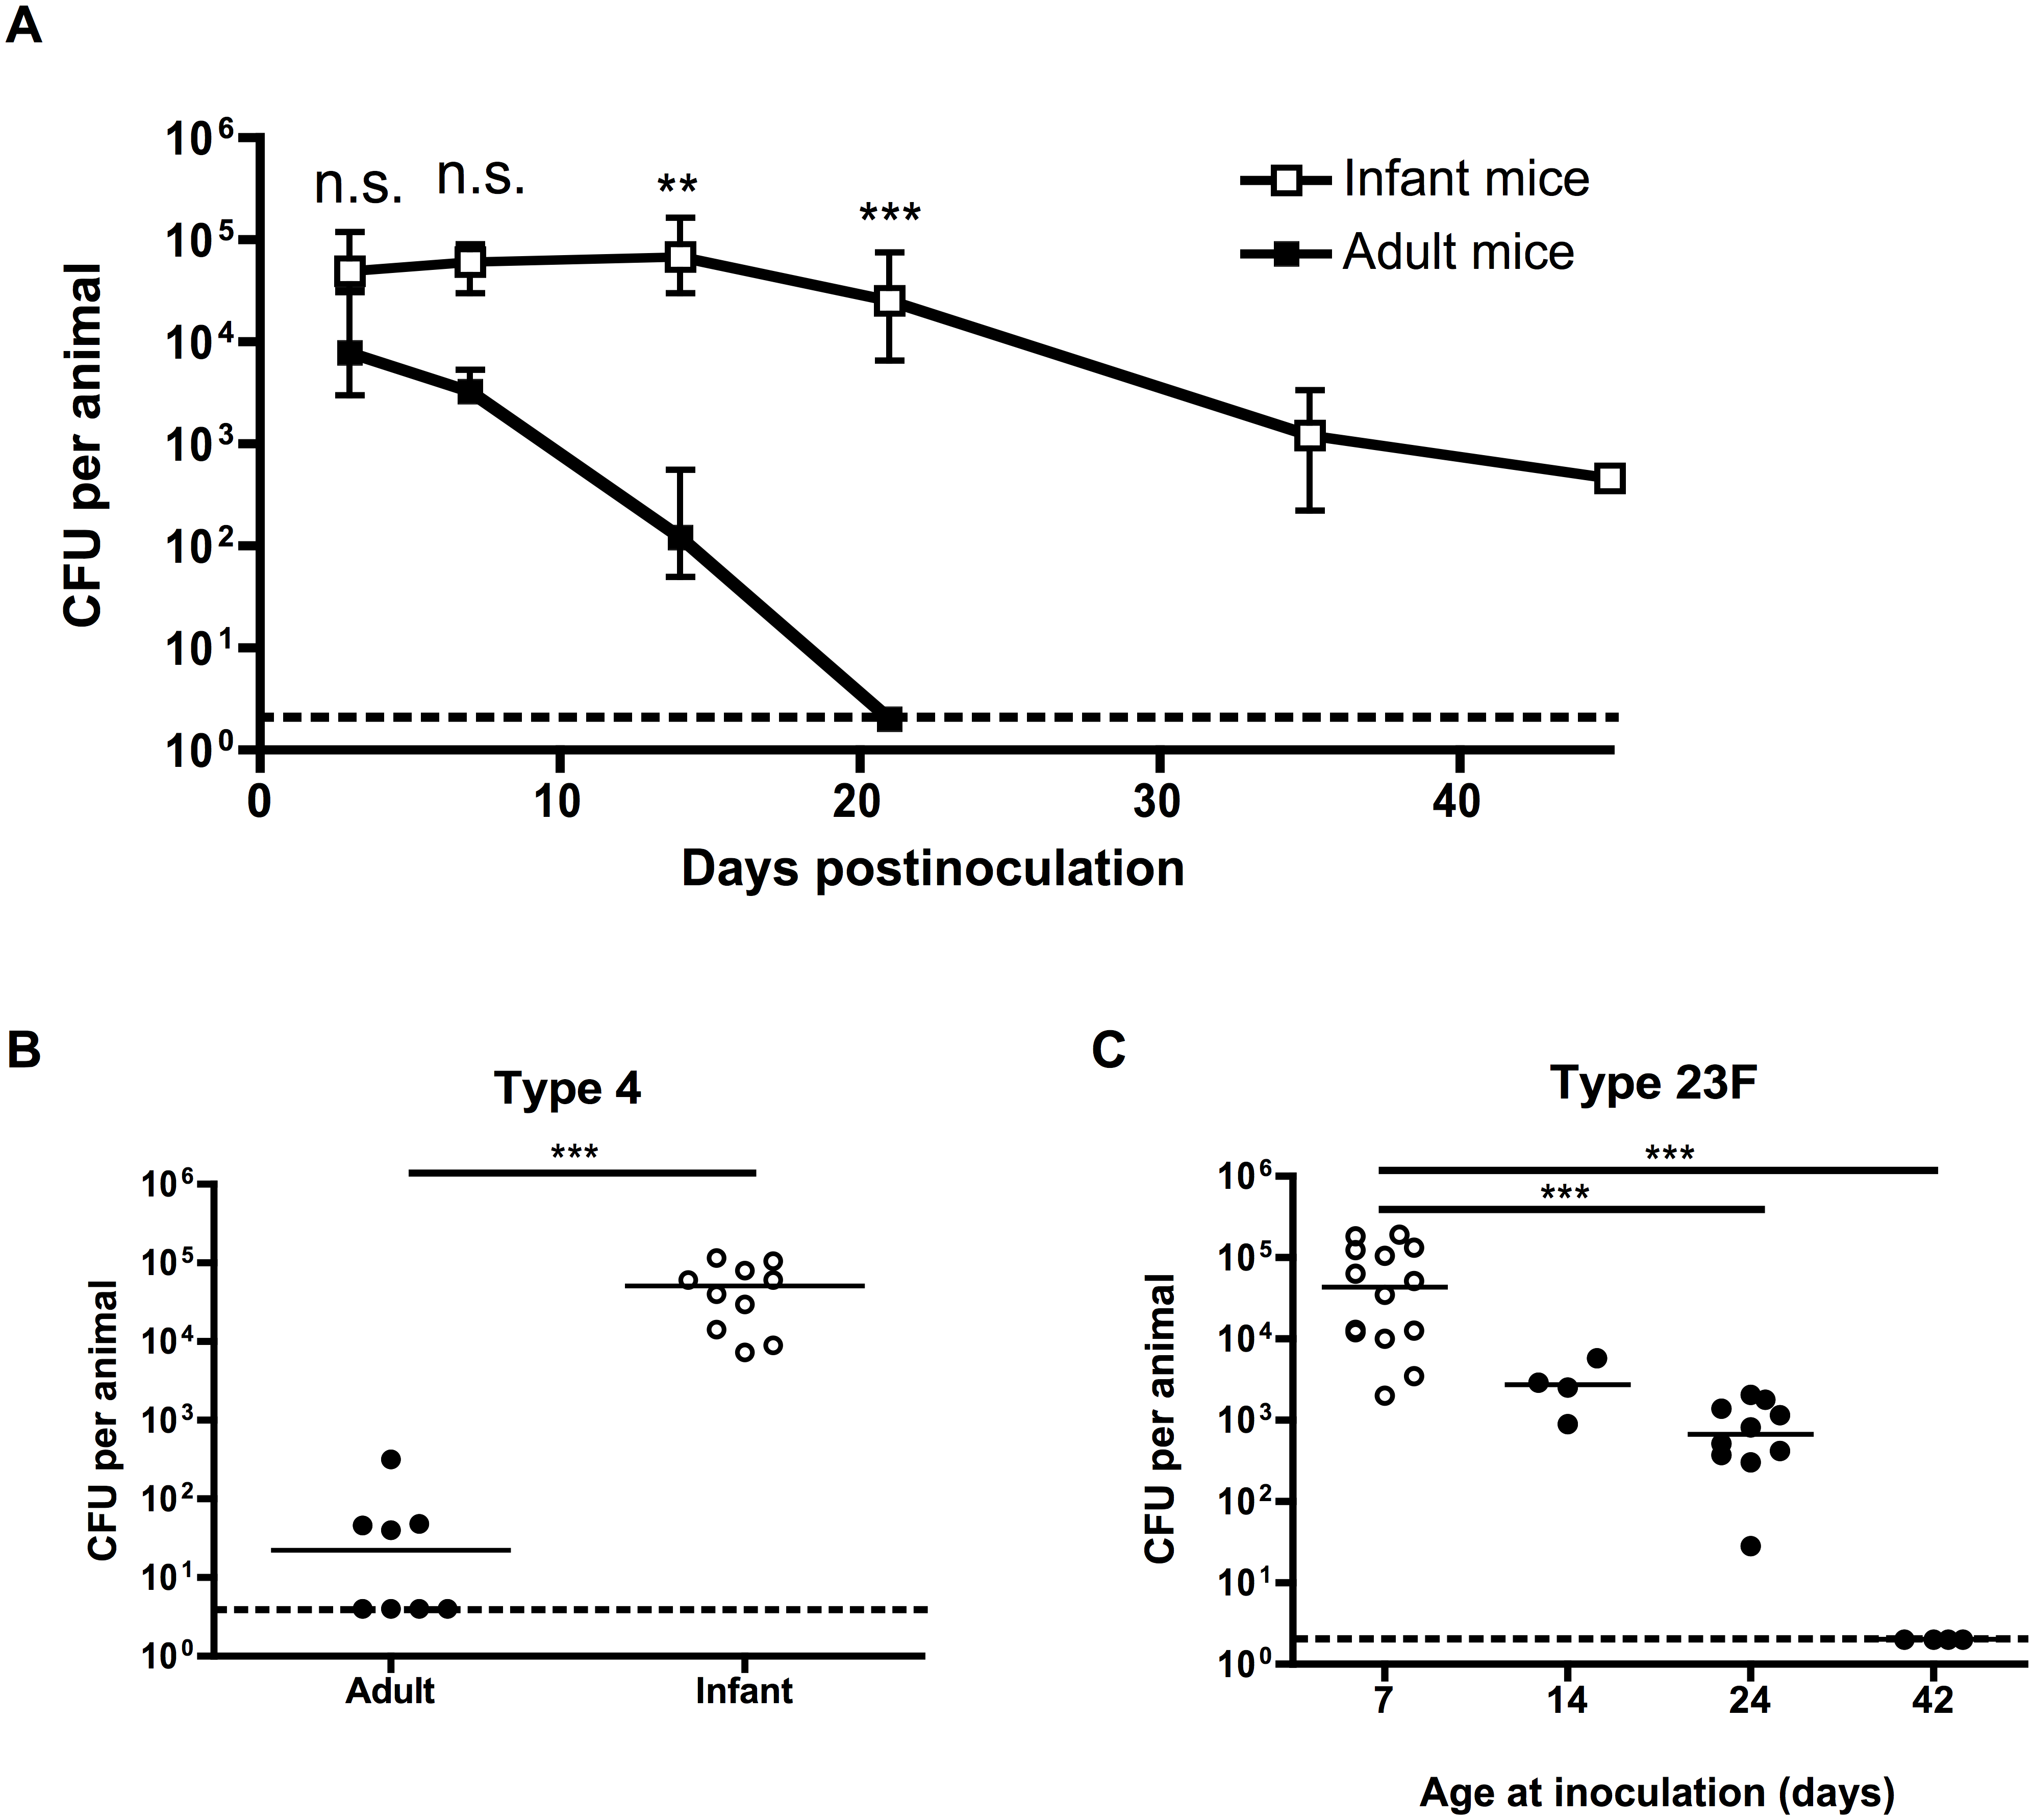 Pneumococcal carriage is prolonged in infant mice.